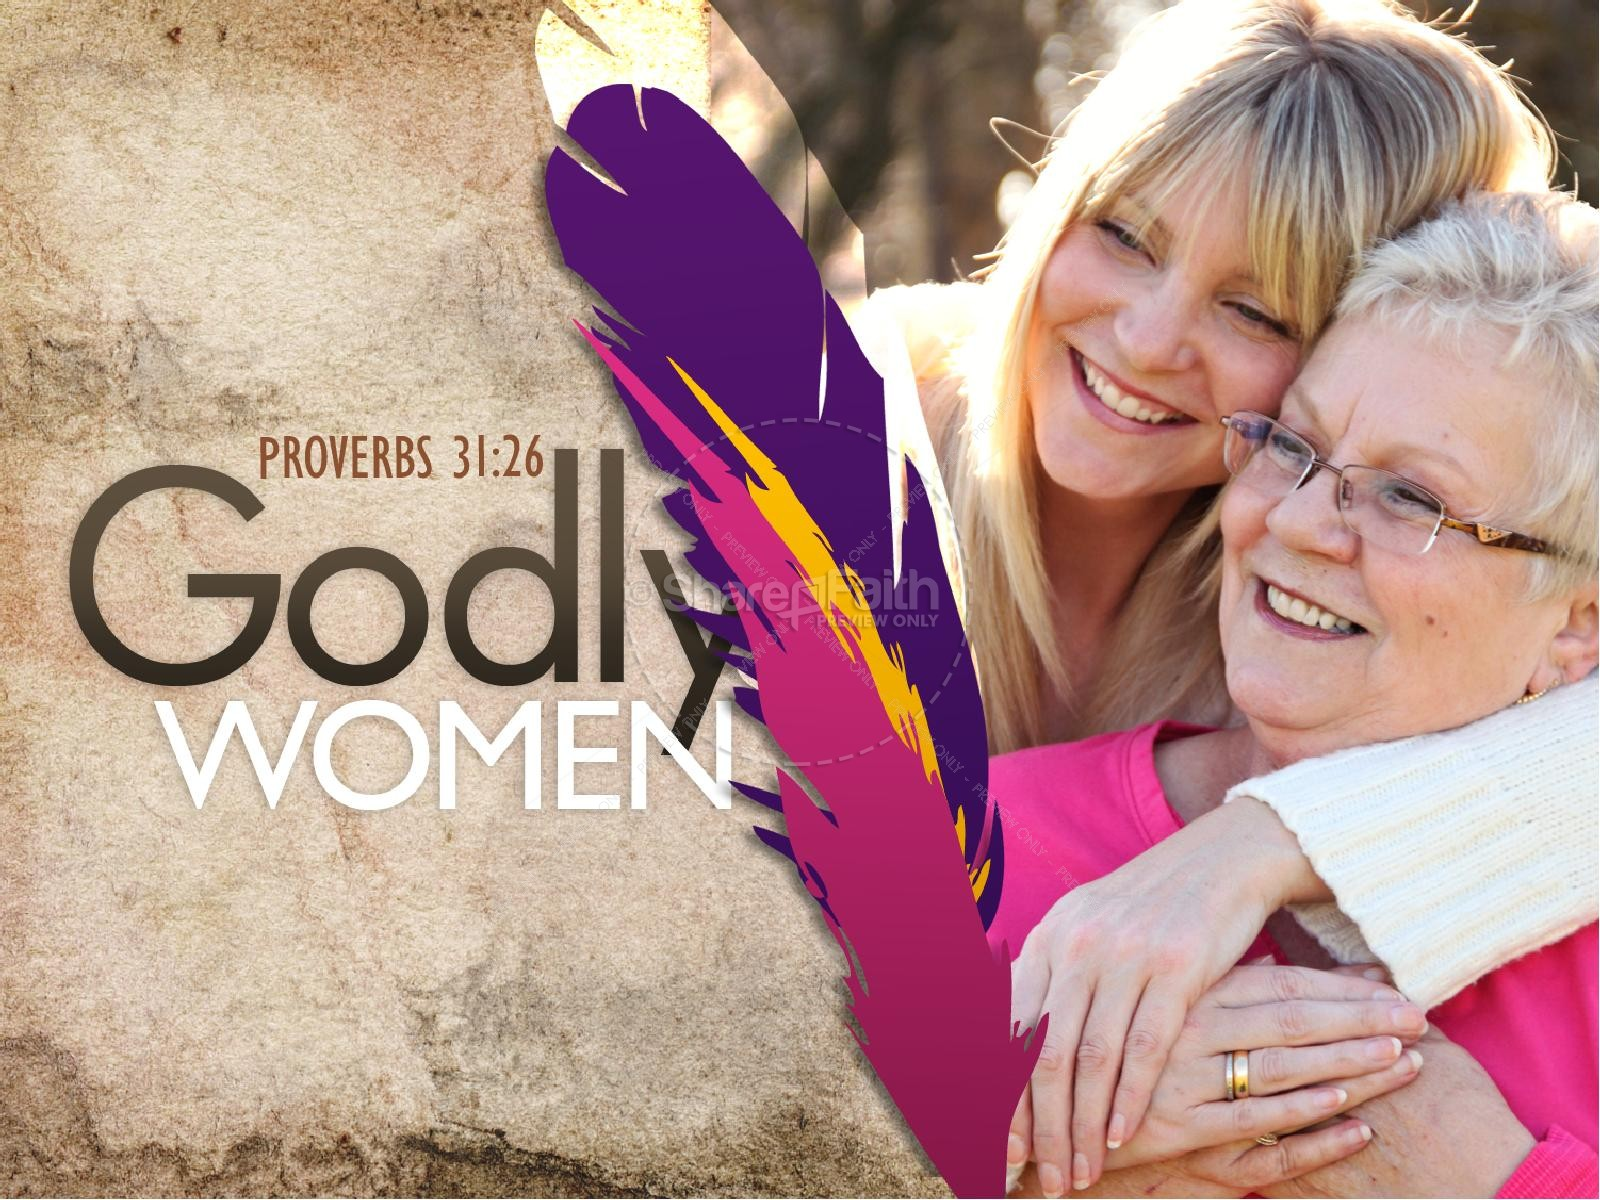 Godly Women PowerPoint Template